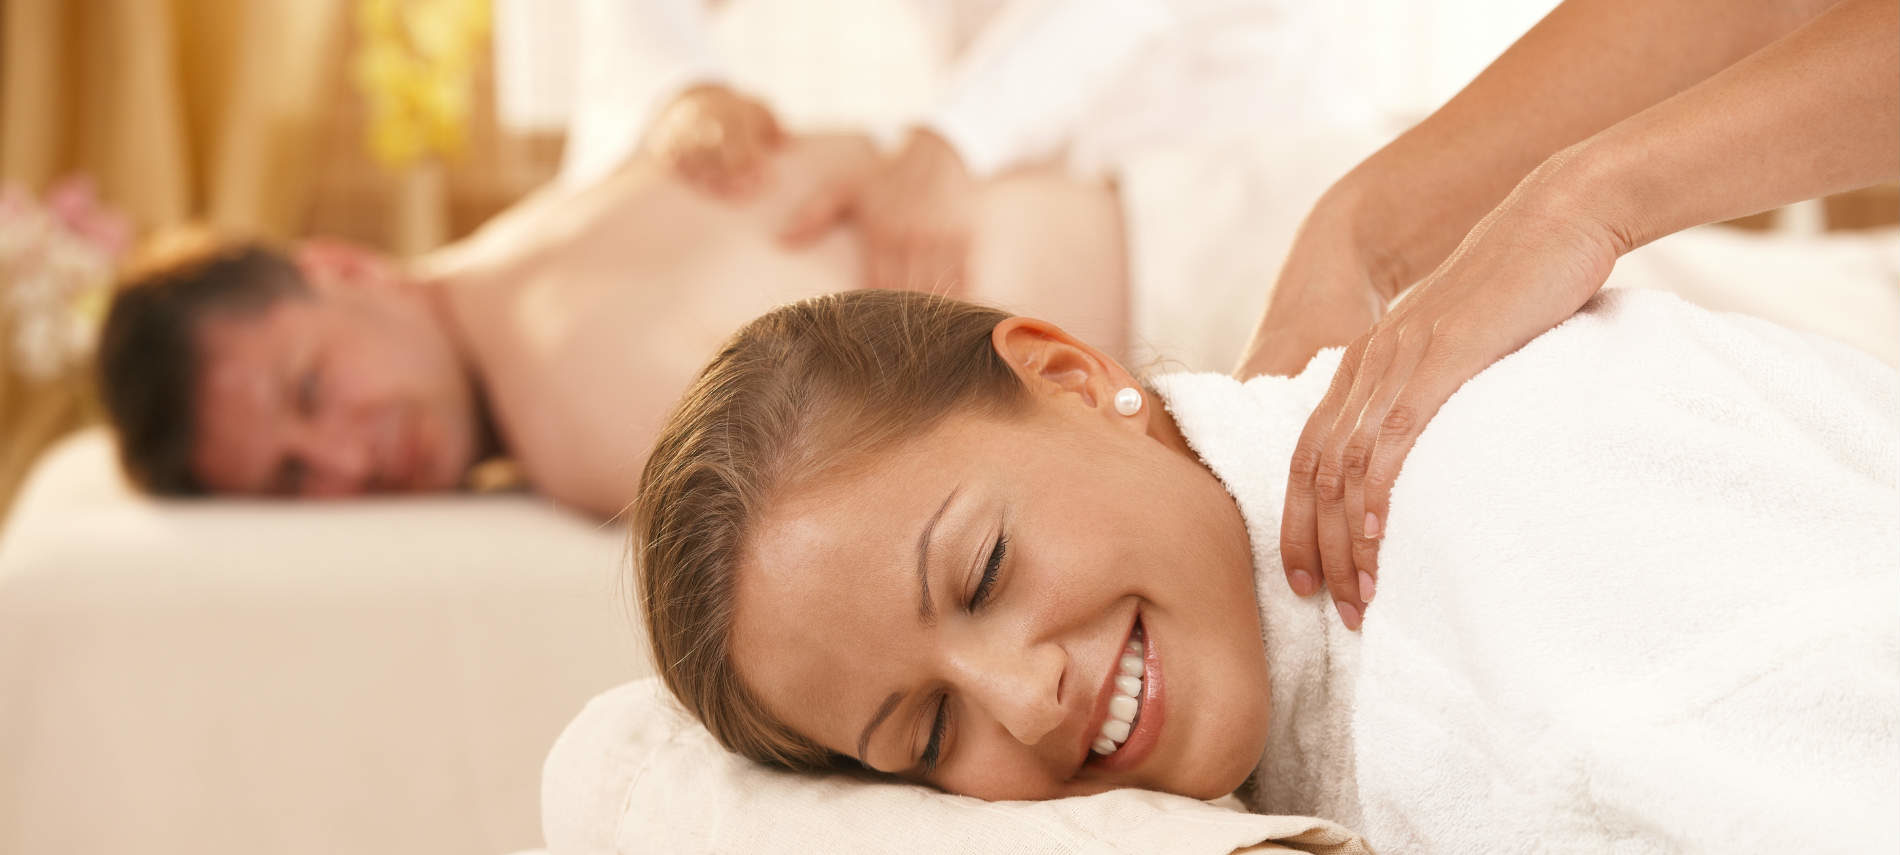 Woman getting a massage while laying down and wearing a robe with a man getting a massage in the background